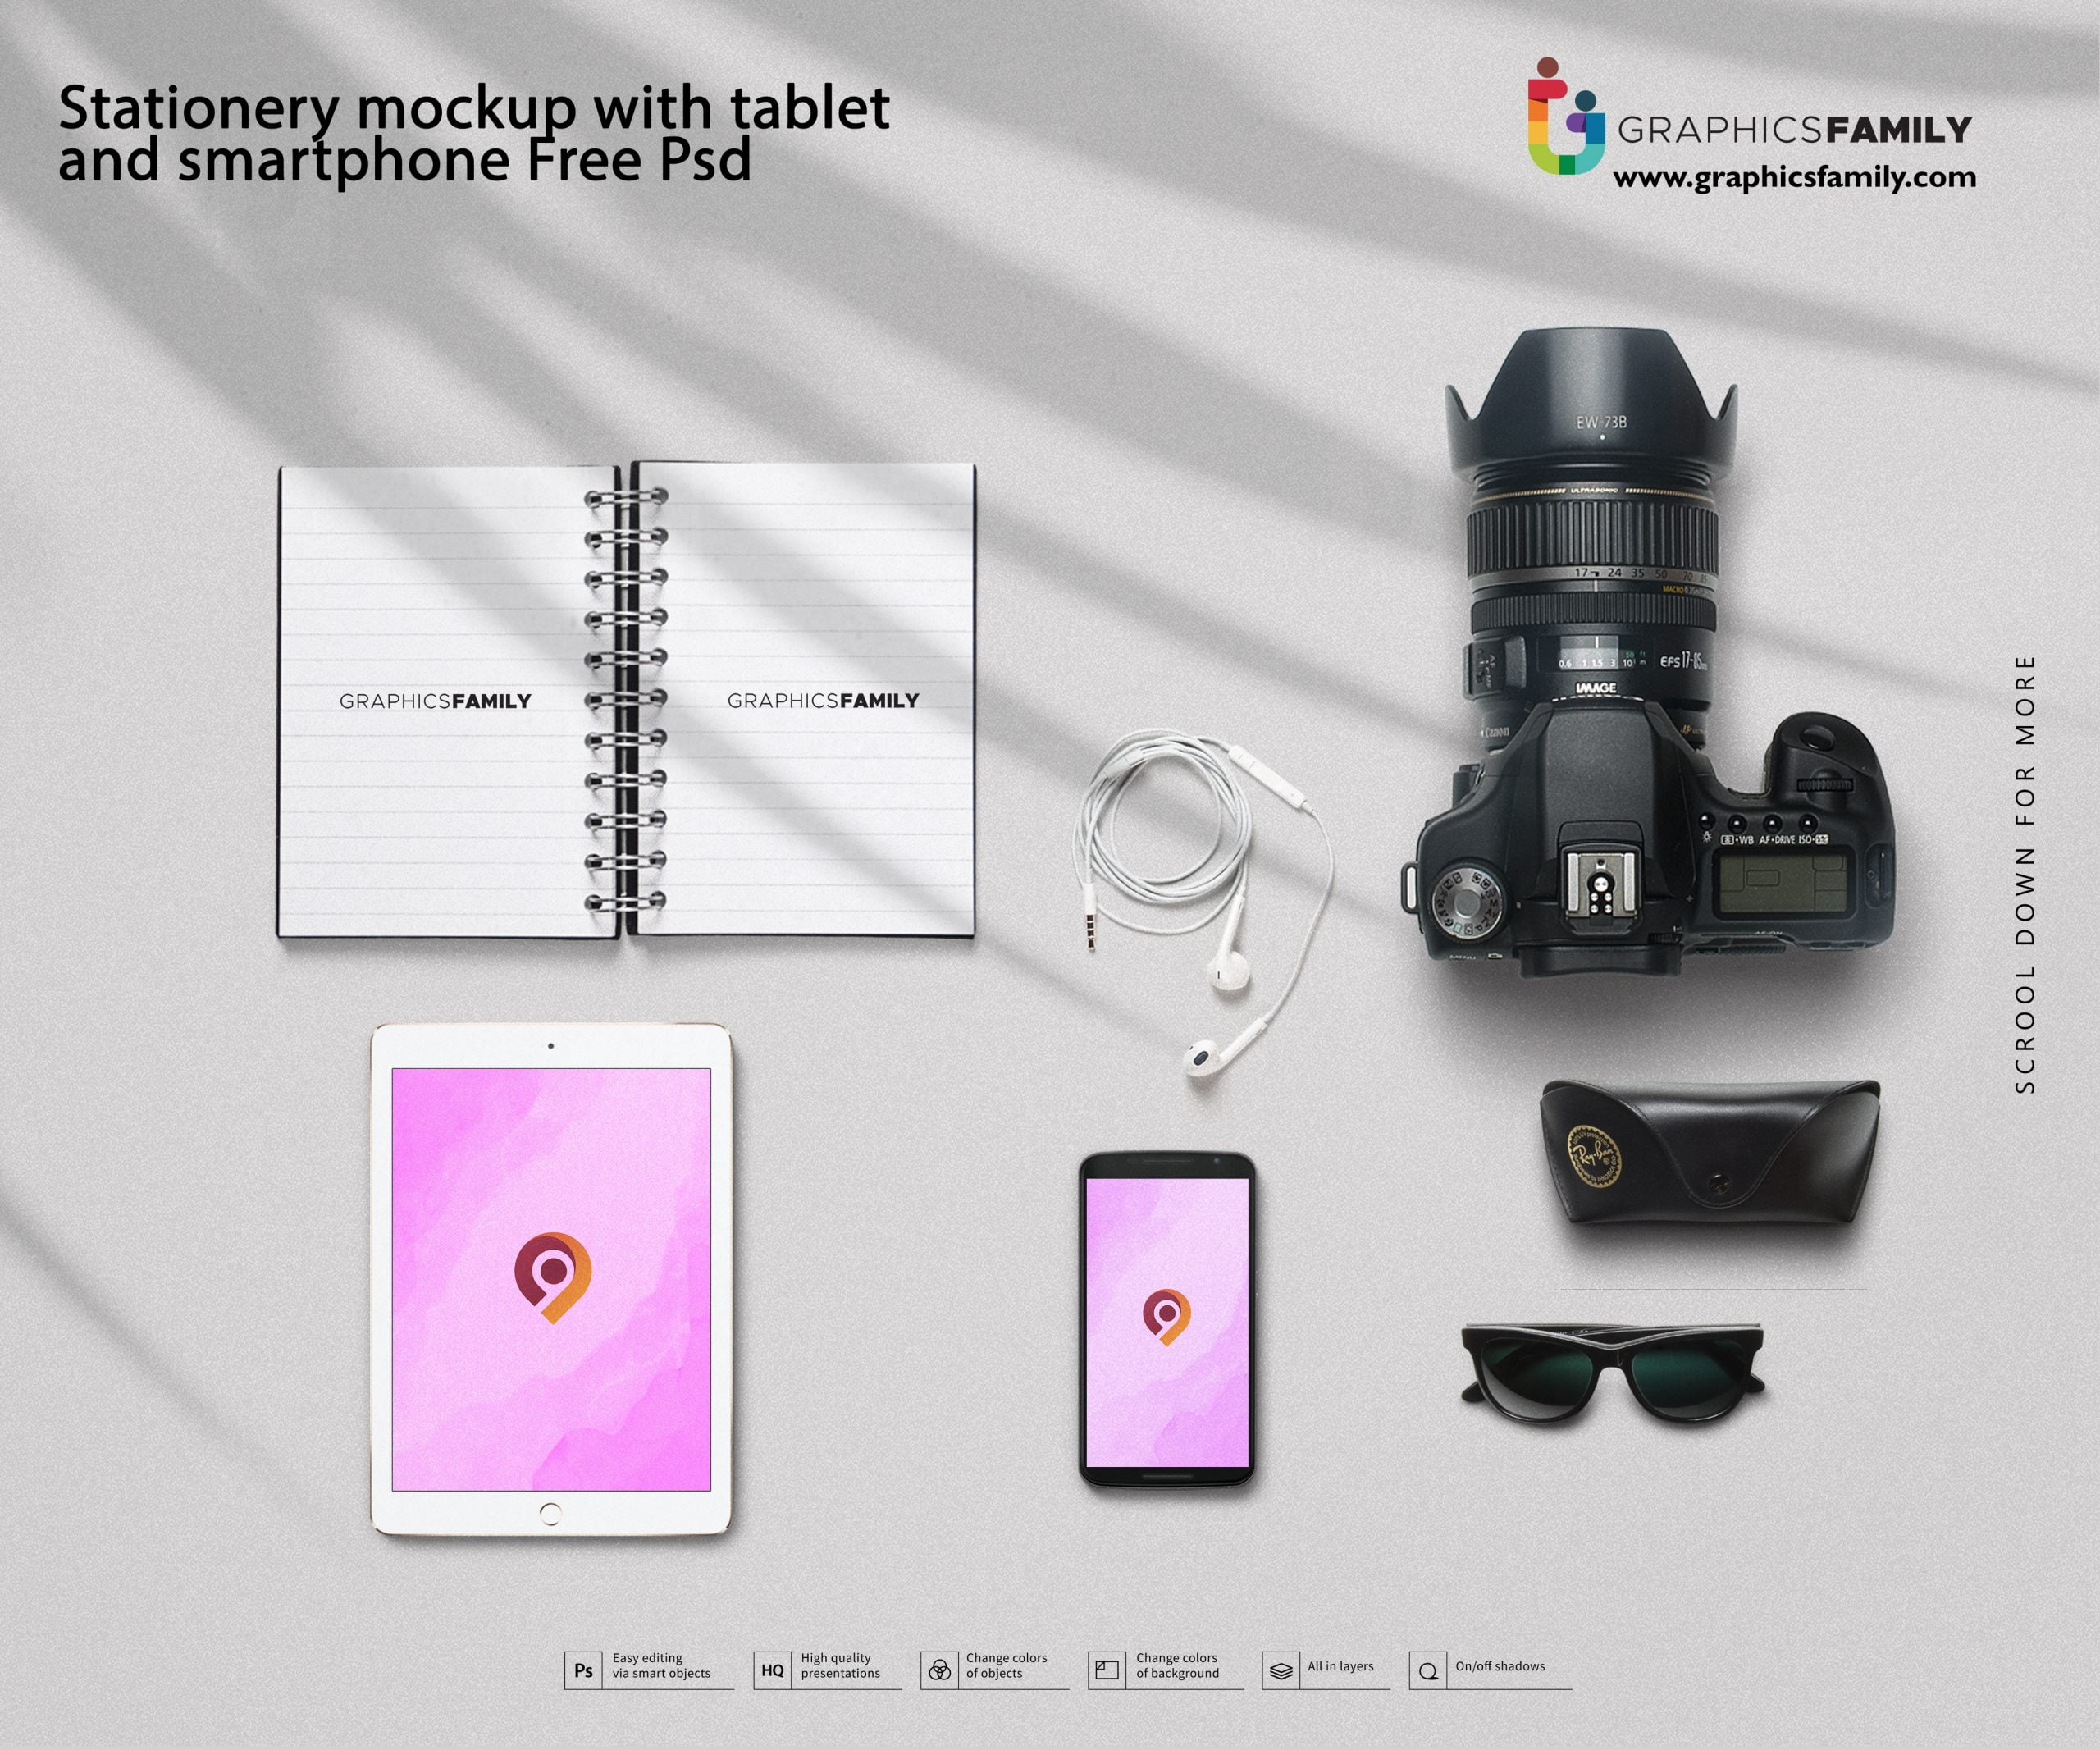 Stationery mockup with tablet and smartphone Free Psd Download